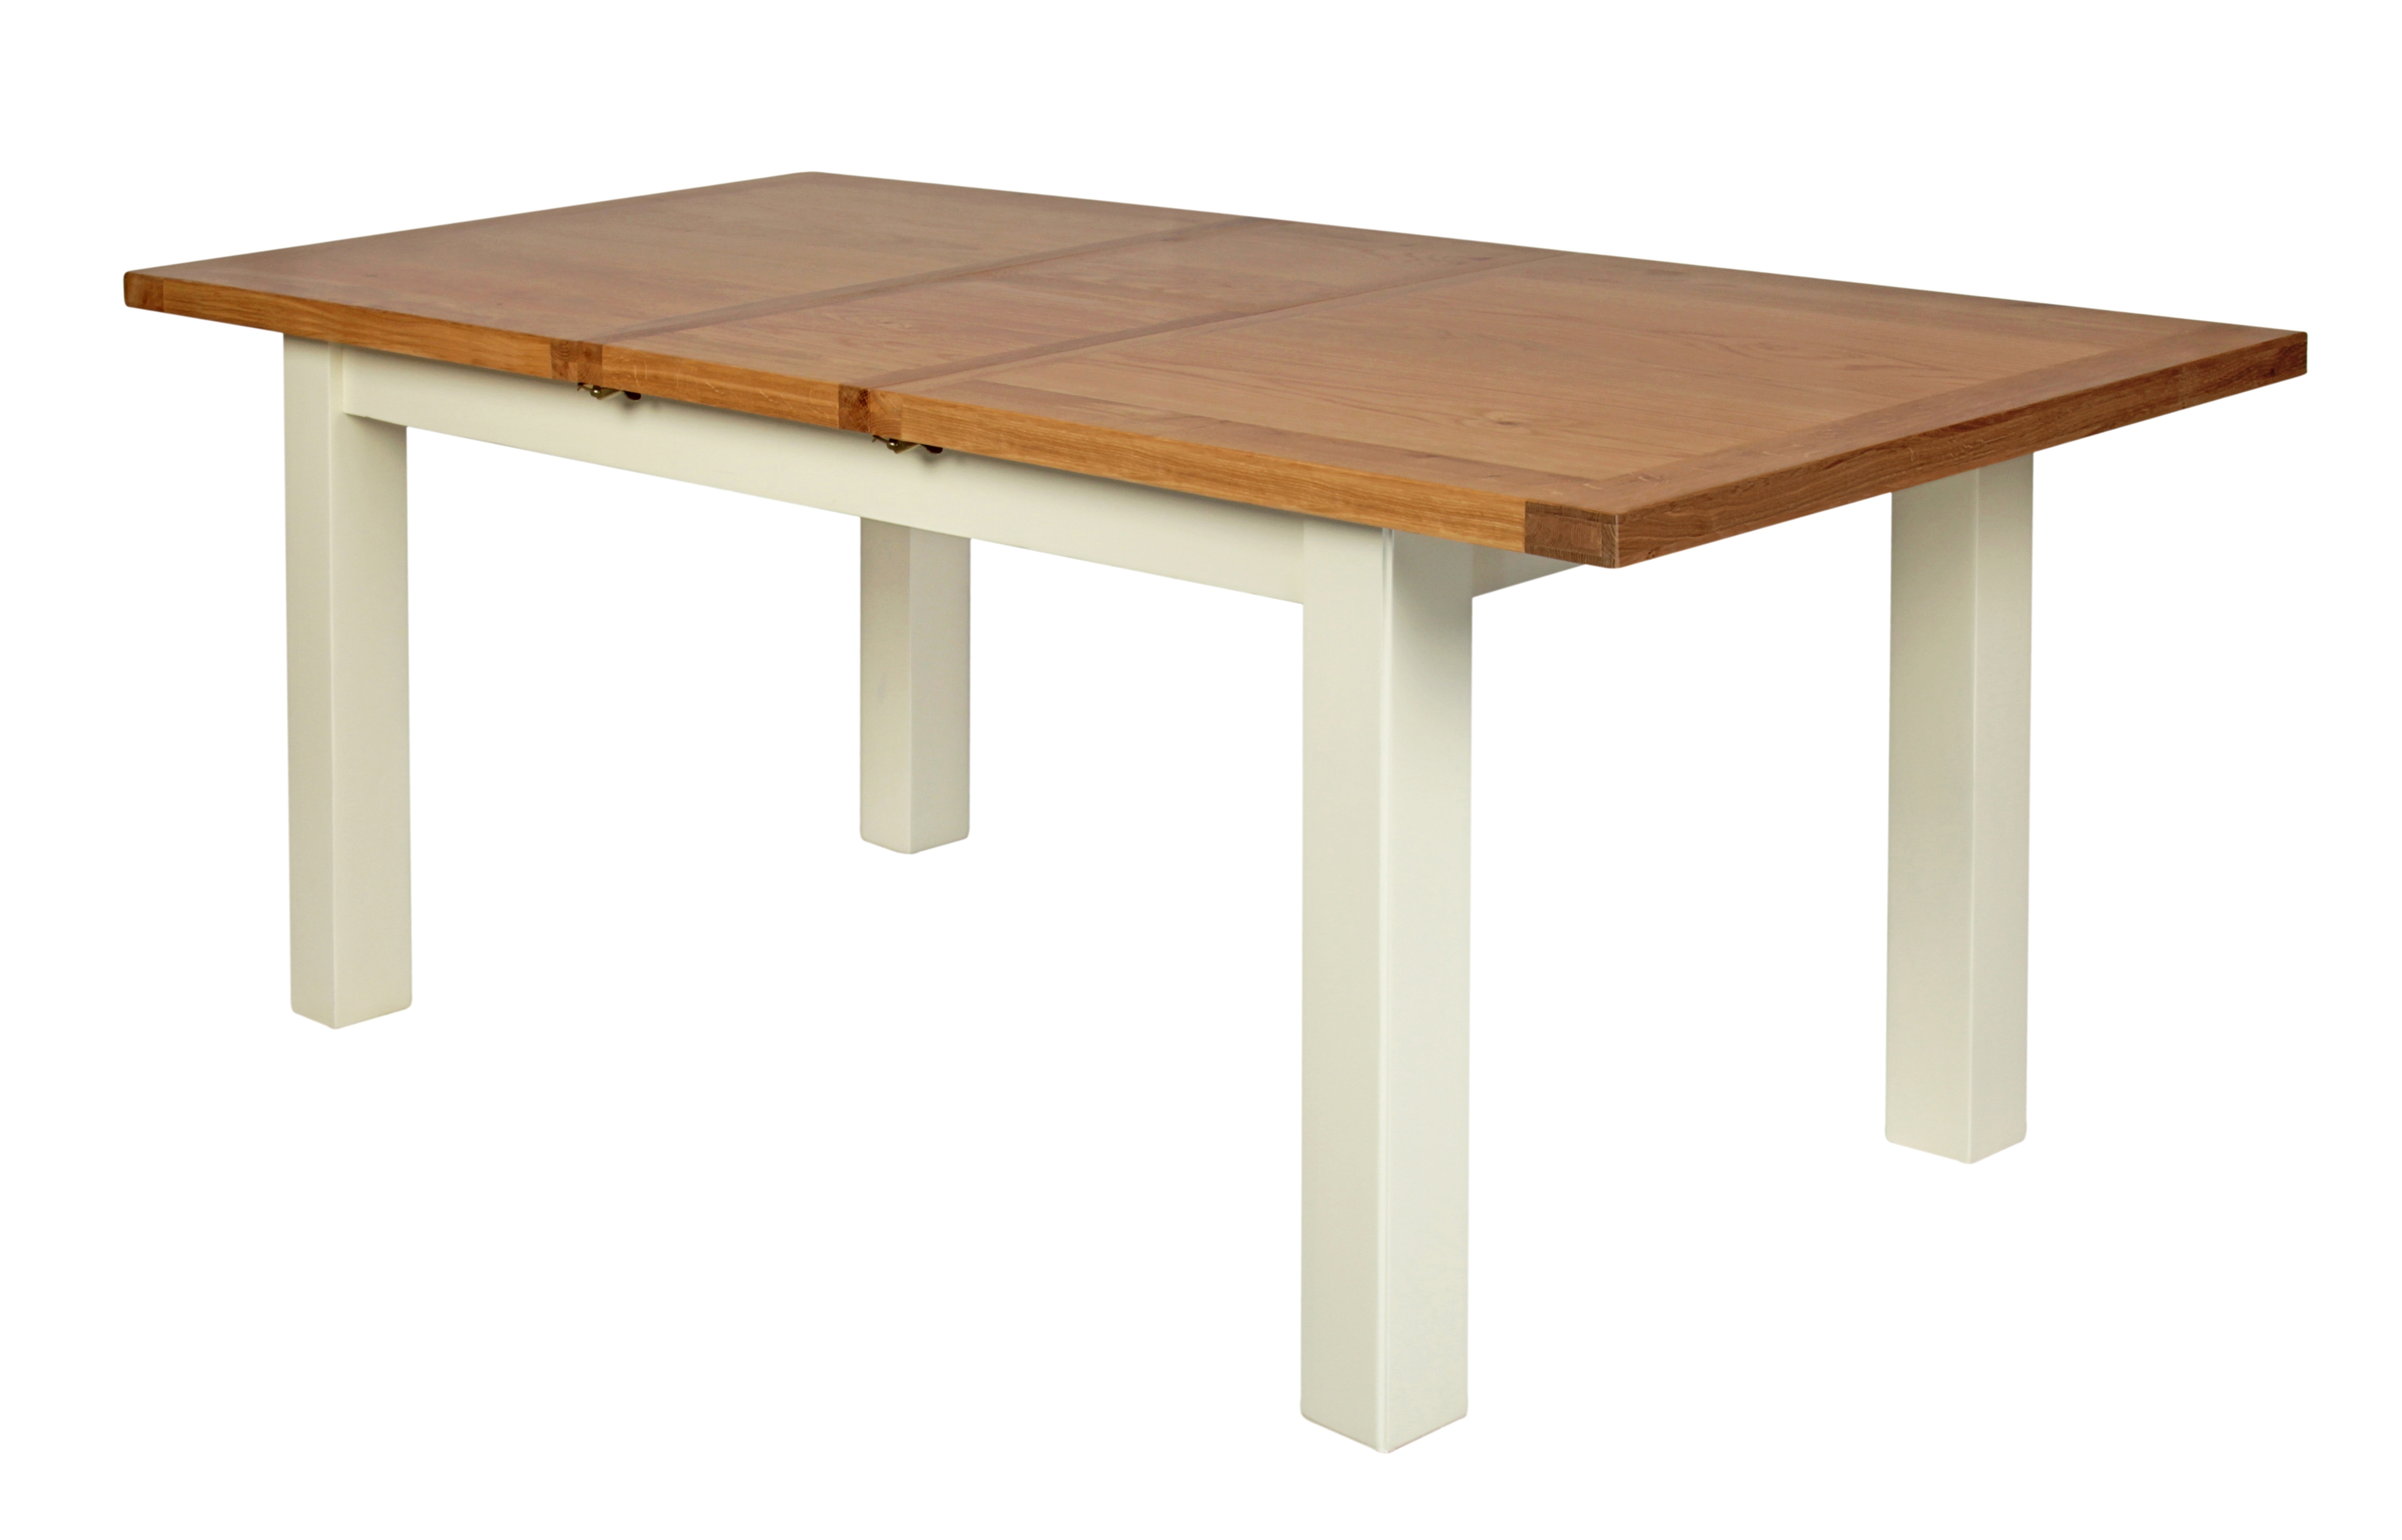 Most Recent Ivory Painted Oak Large Extending Dining Table With Butterfly For Ivory Painted Dining Tables (View 17 of 25)